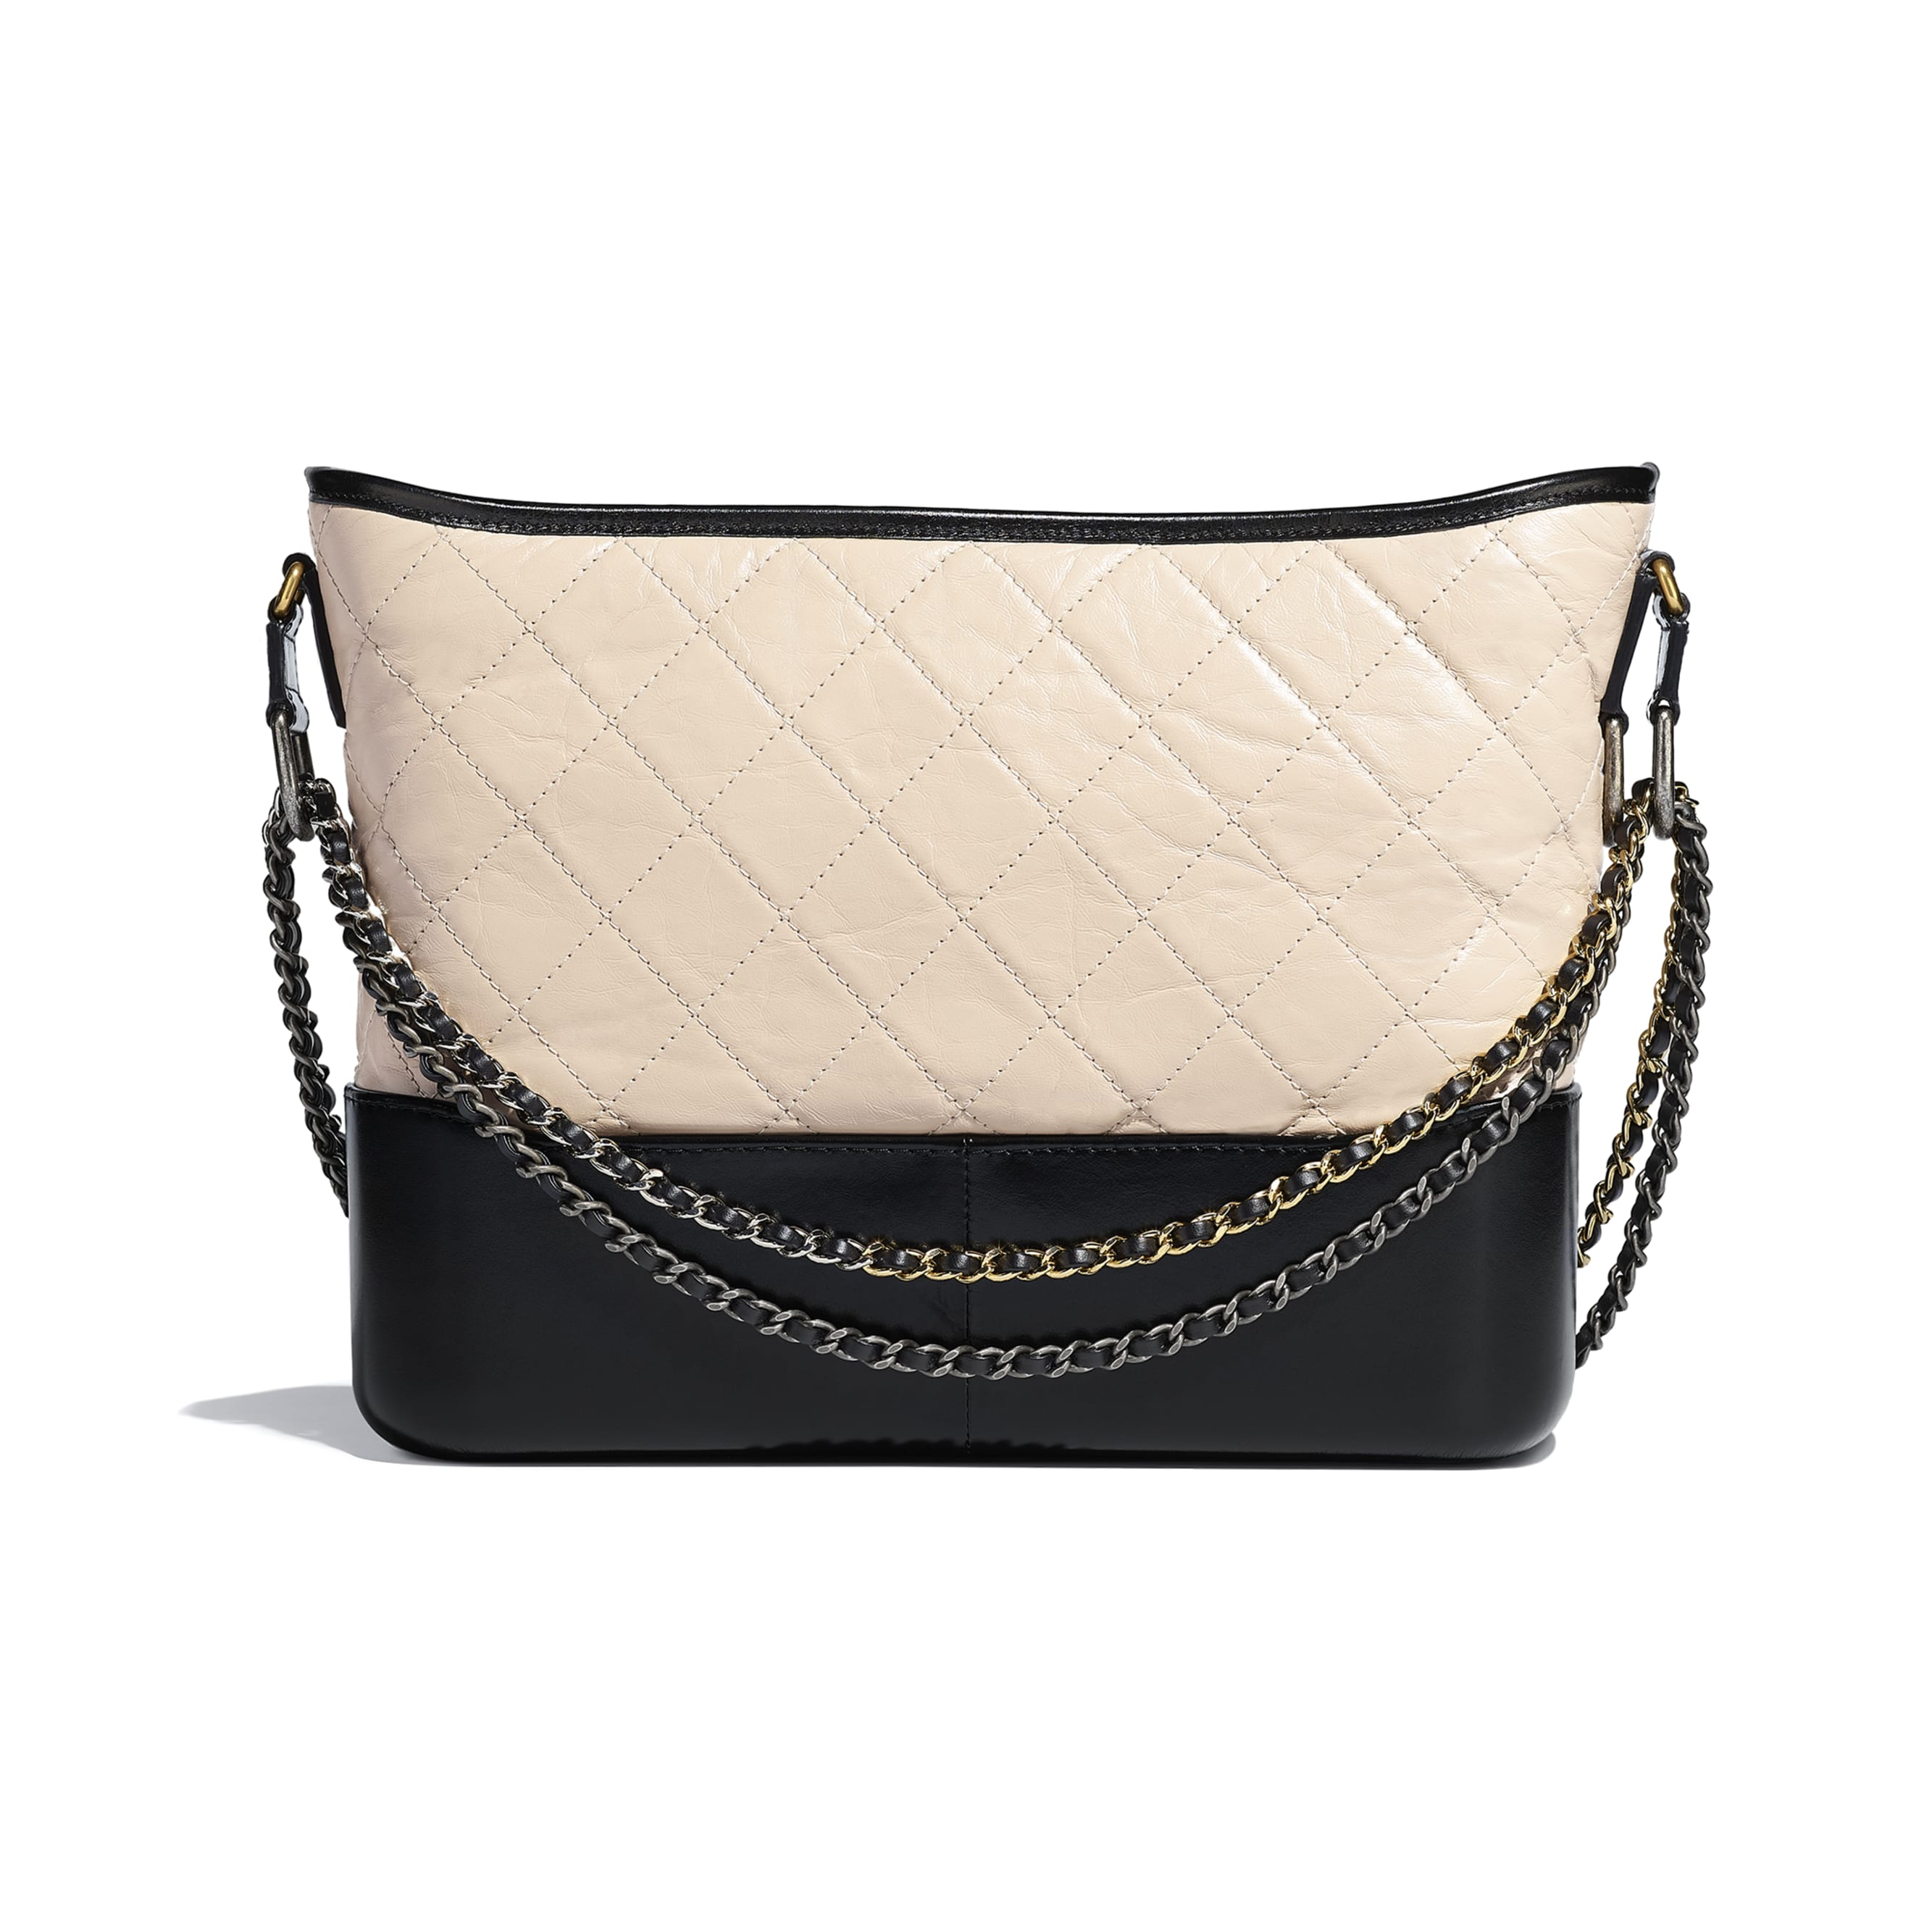 CHANEL'S GABRIELLE Large Hobo Bag - Beige & Black - Aged Calfskin, Smooth Calfskin, Silver-Tone & Gold-Tone Metal - Alternative view - see standard sized version